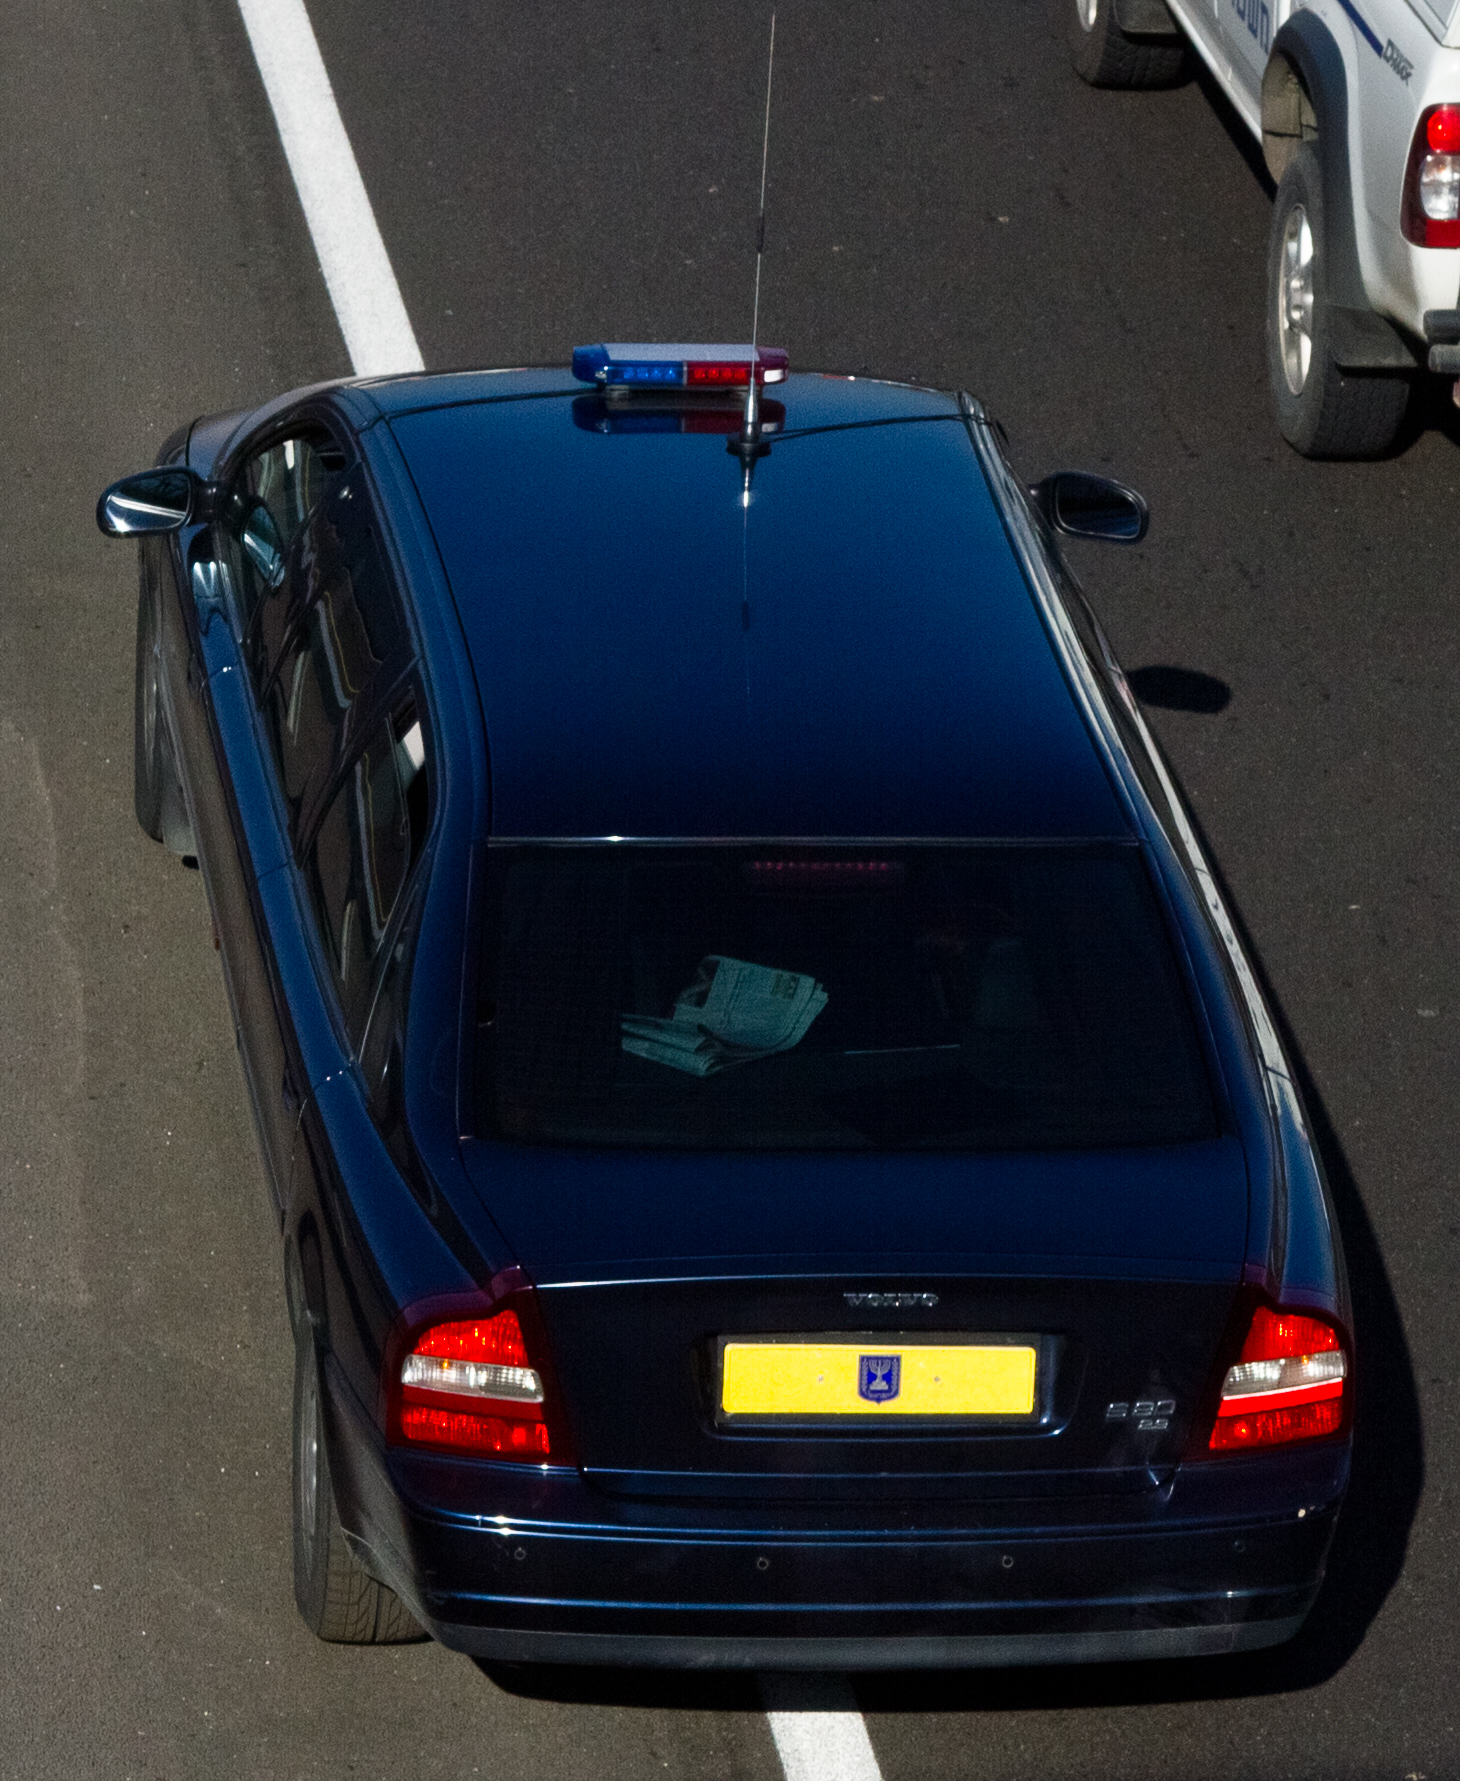 Israeli_Government_Official_Car_-_Volvo_S80_Stretch_Limousine_-_Rear